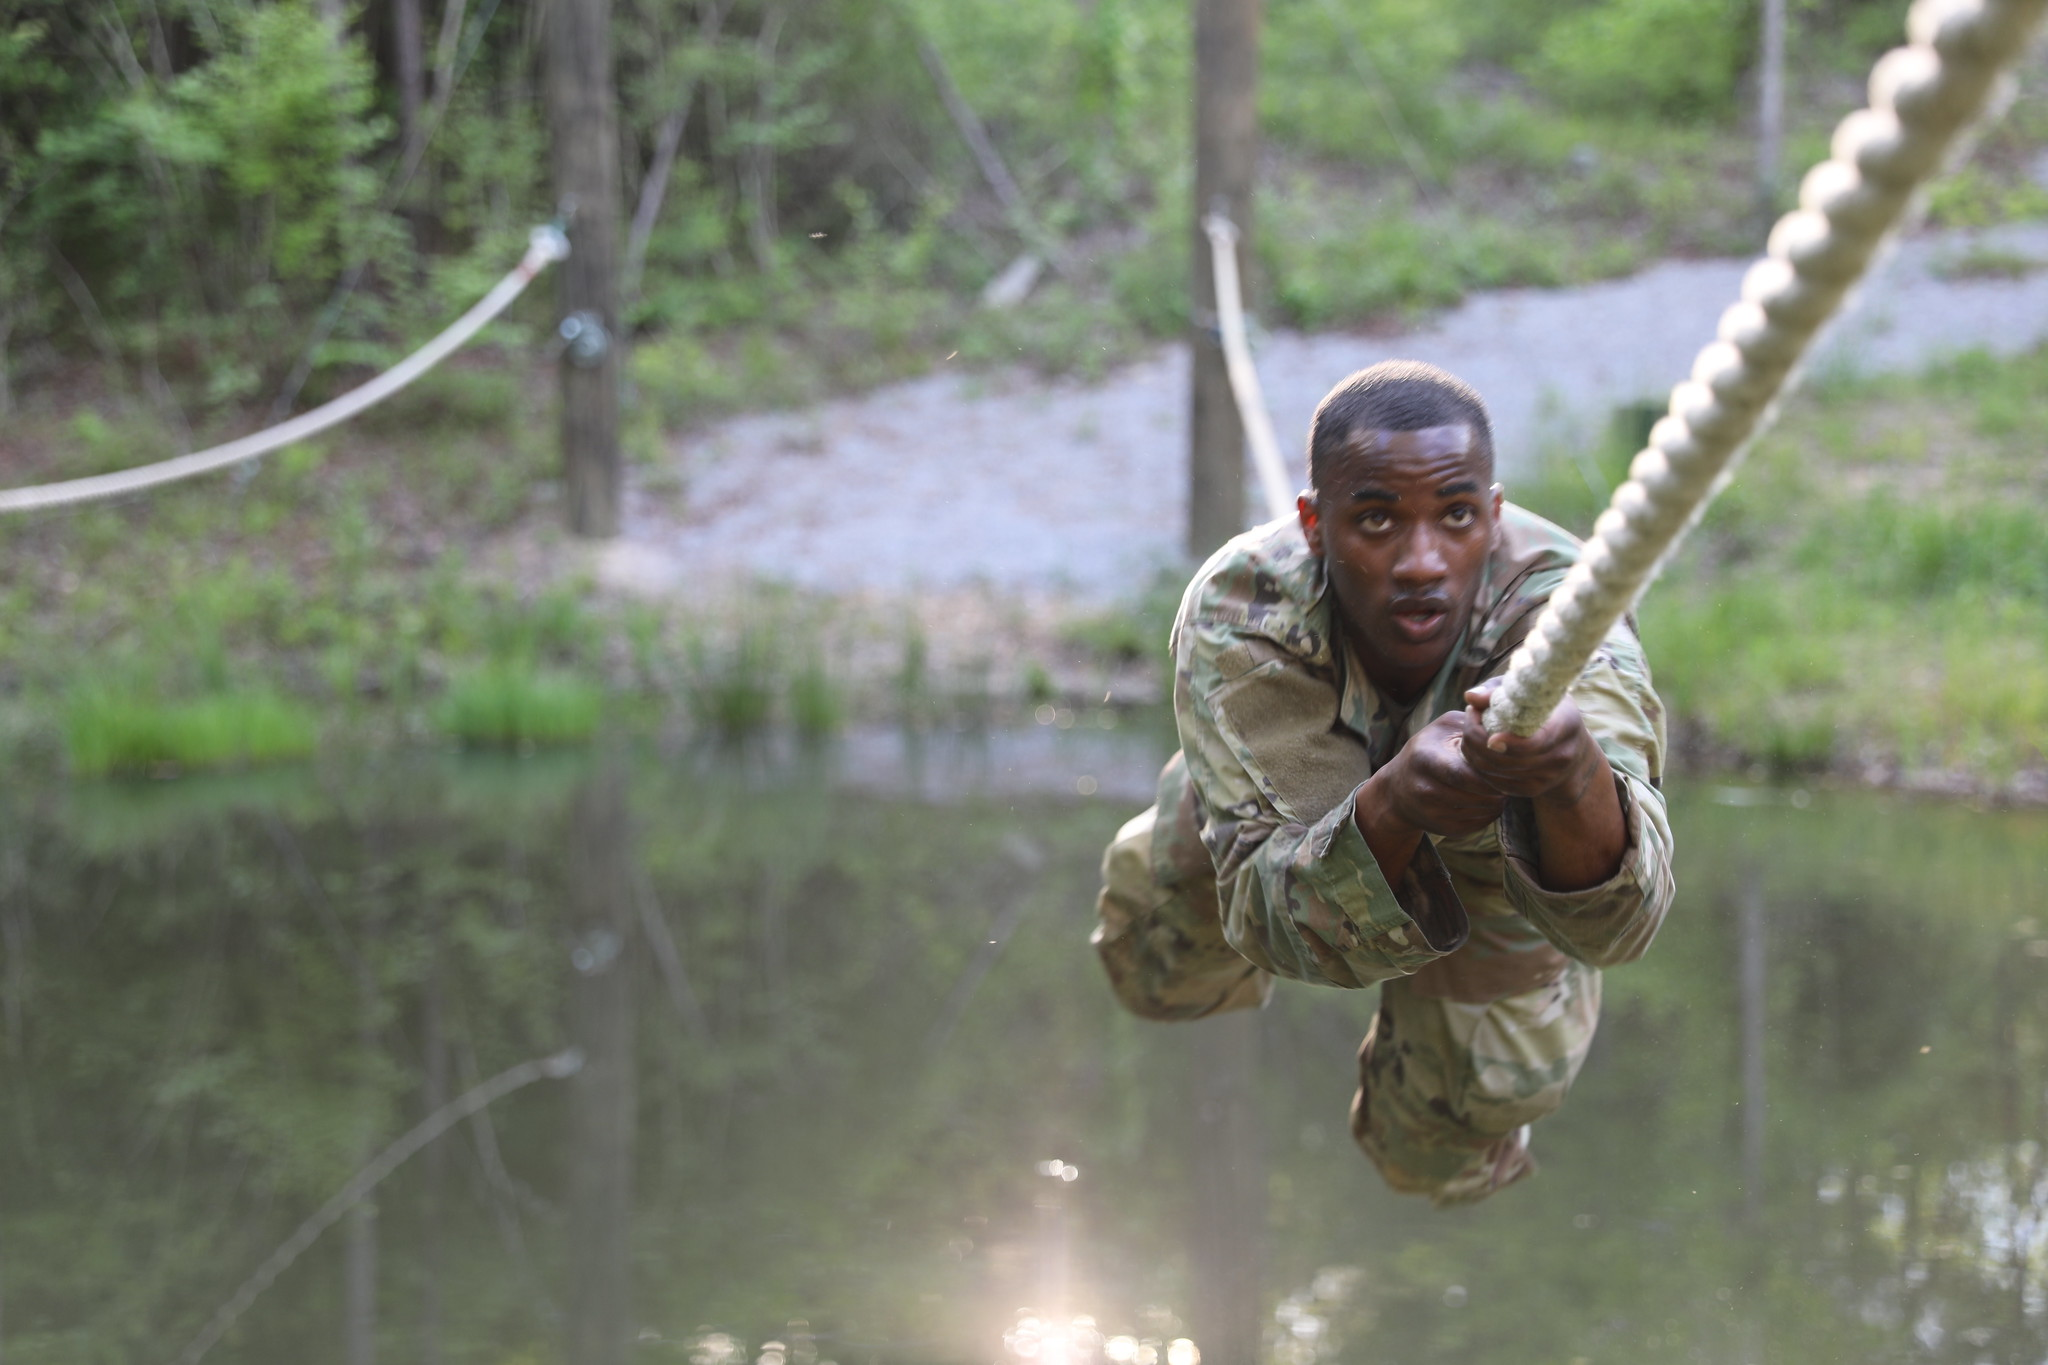 Spc. Kysam Moody moves through the obstacle course at the Mississippi National Guard Best Warrior Competition at Camp Shelby Joint Forces Training Center, near Hattiesburg, Miss., April 20, 2020. (Spc. Benjamin Tomlinson/Army National Guard)